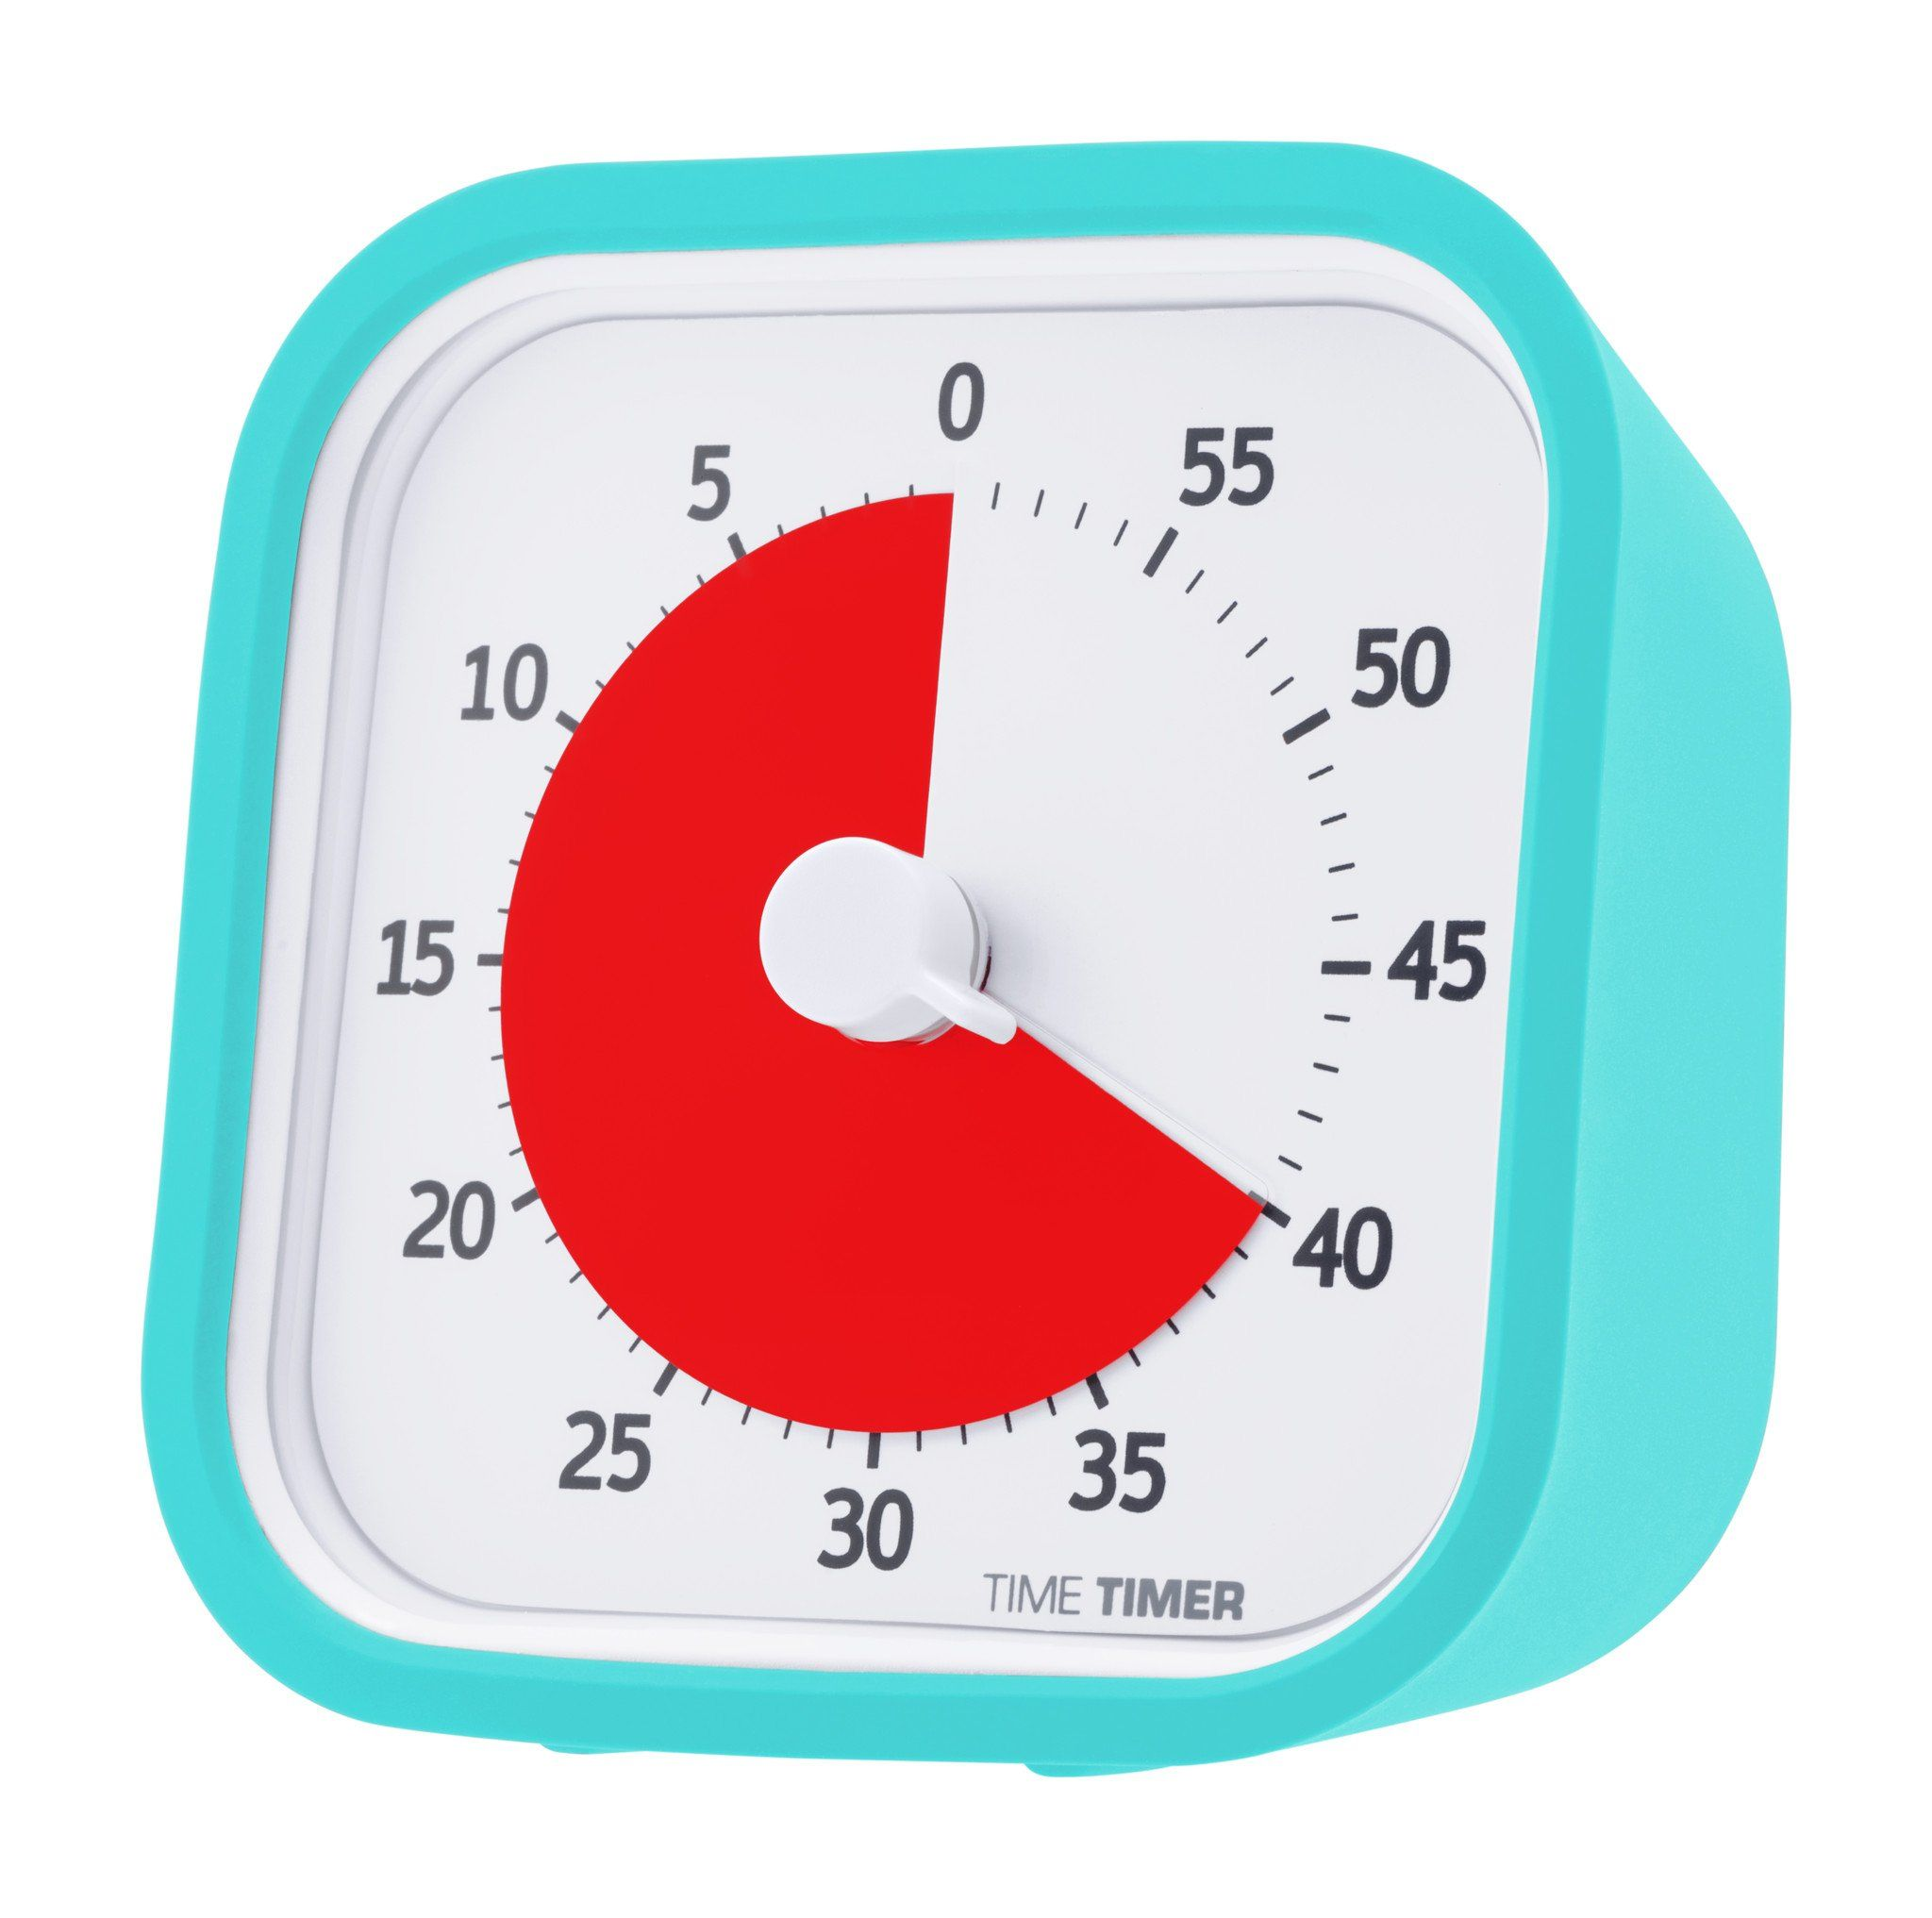 Mod Executive Functioning Time Timer Time Management Tools